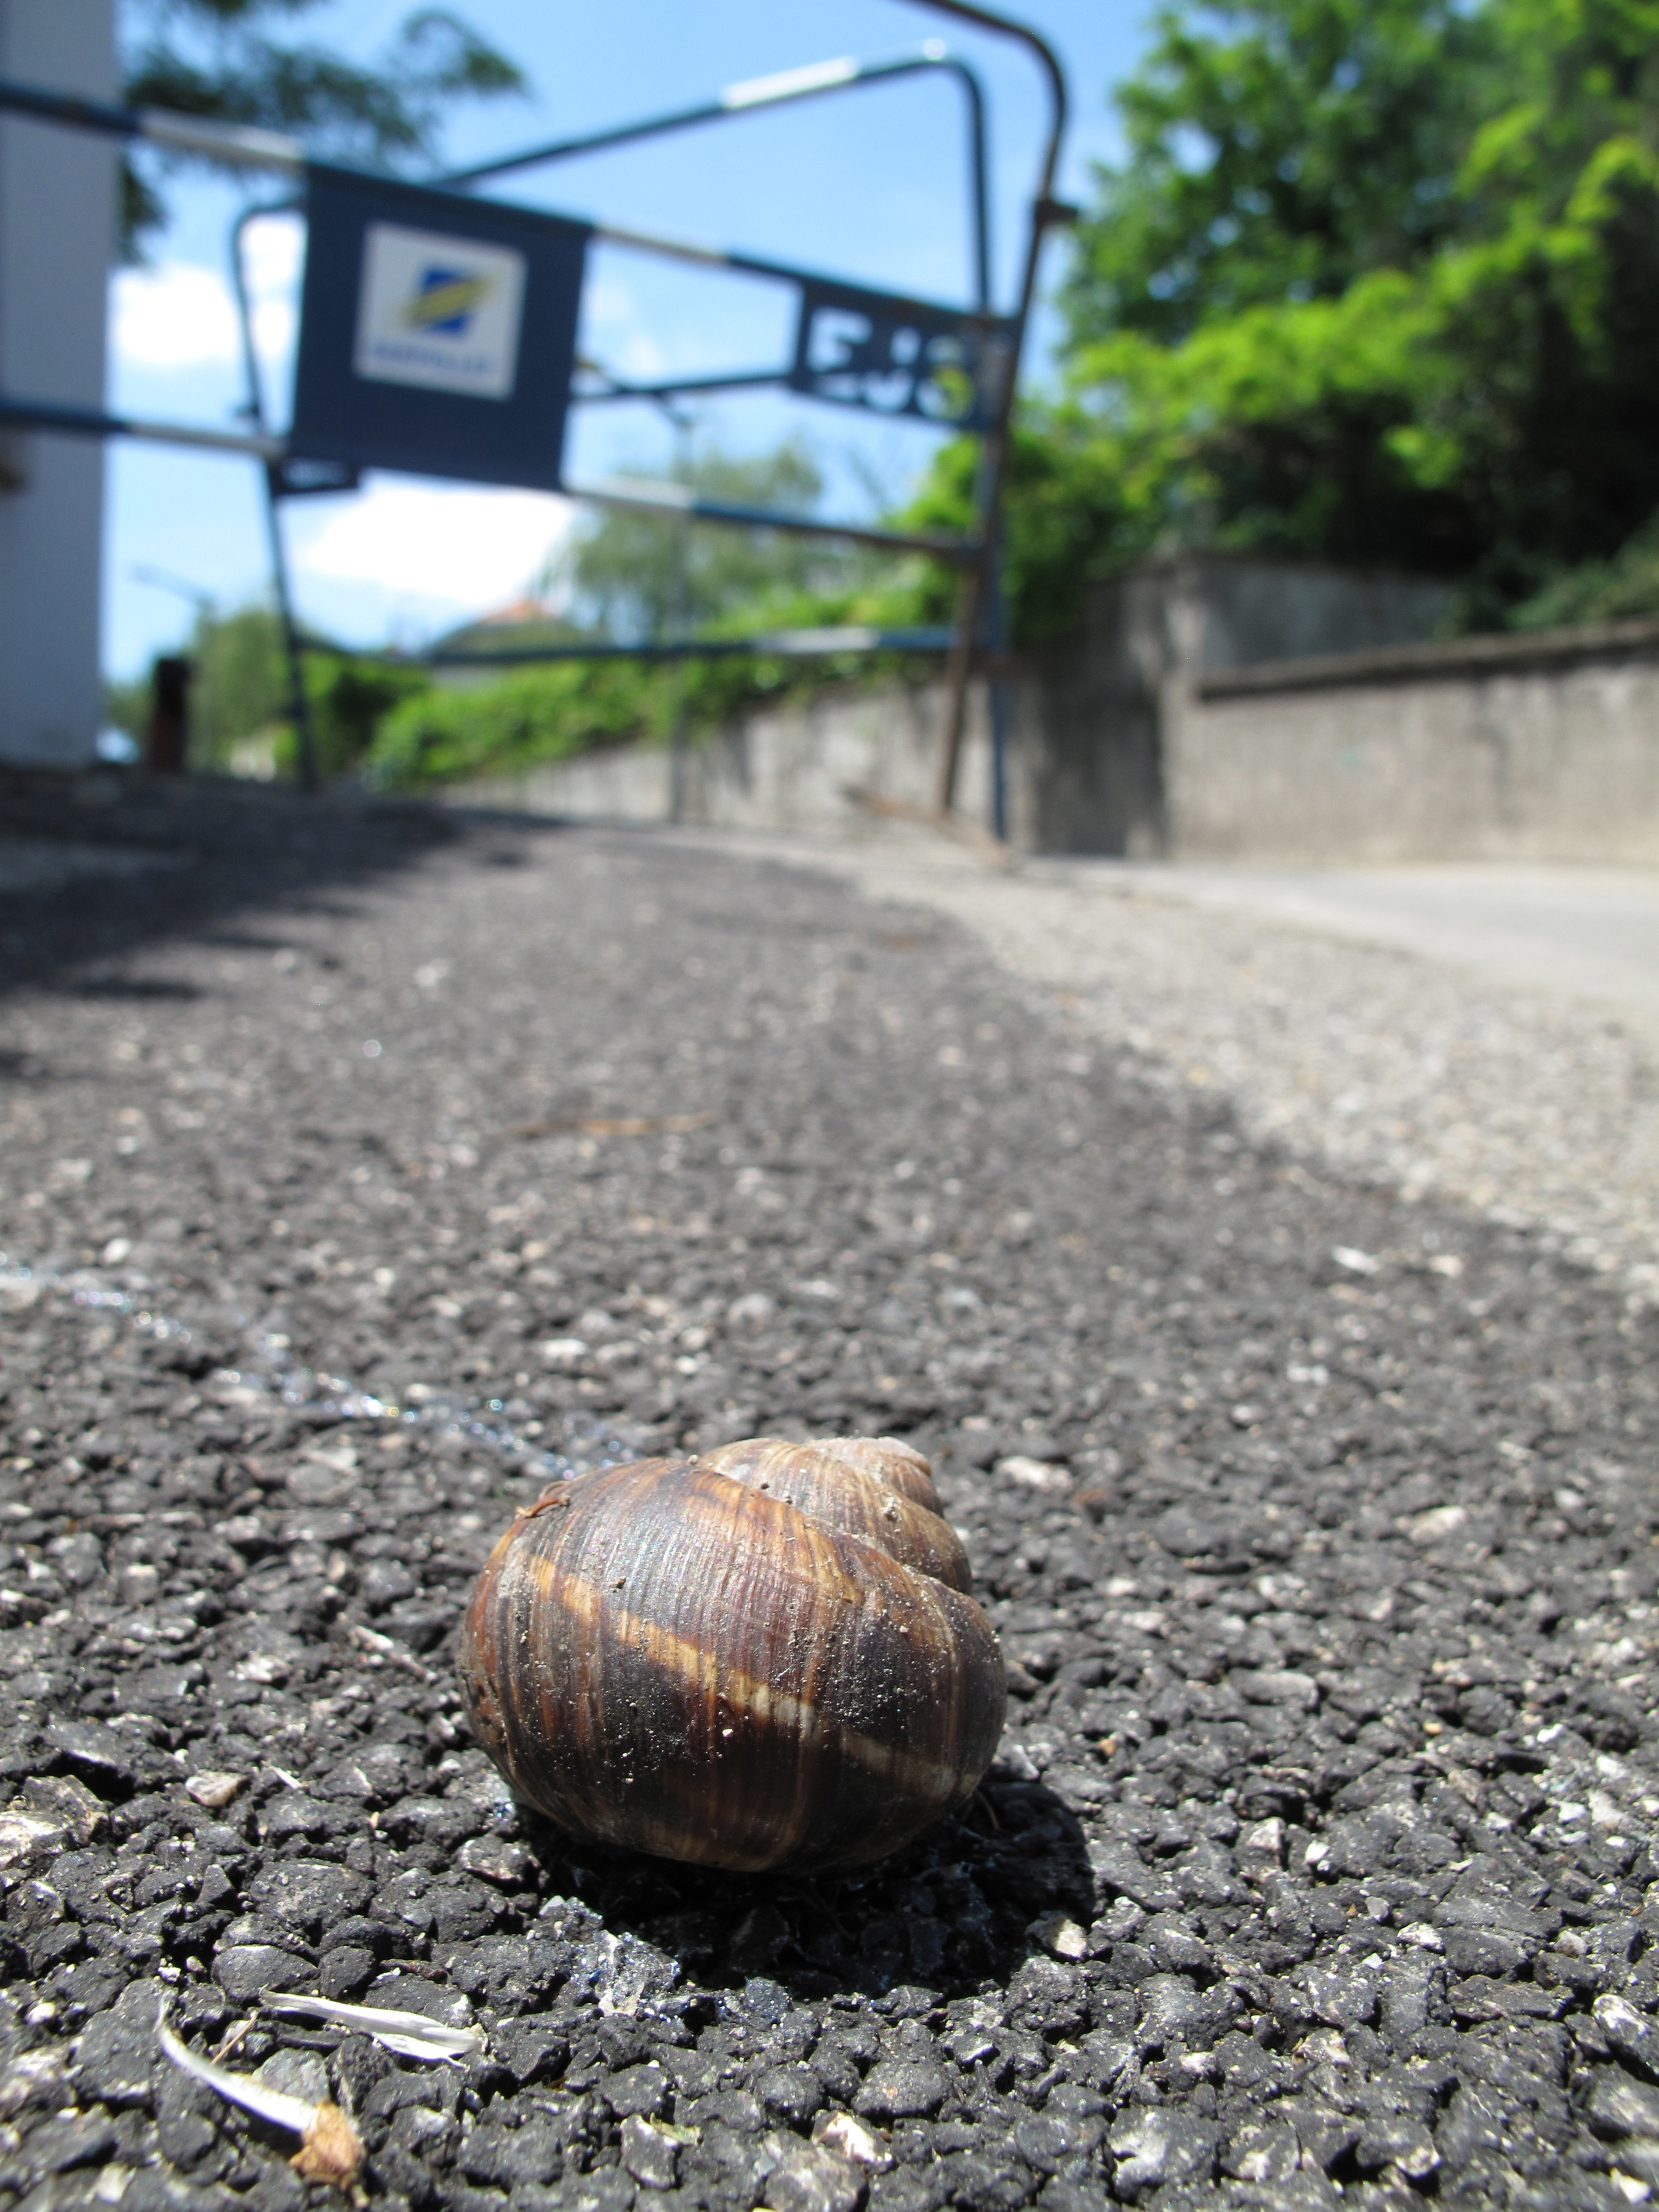 Saving snails from the footpath.